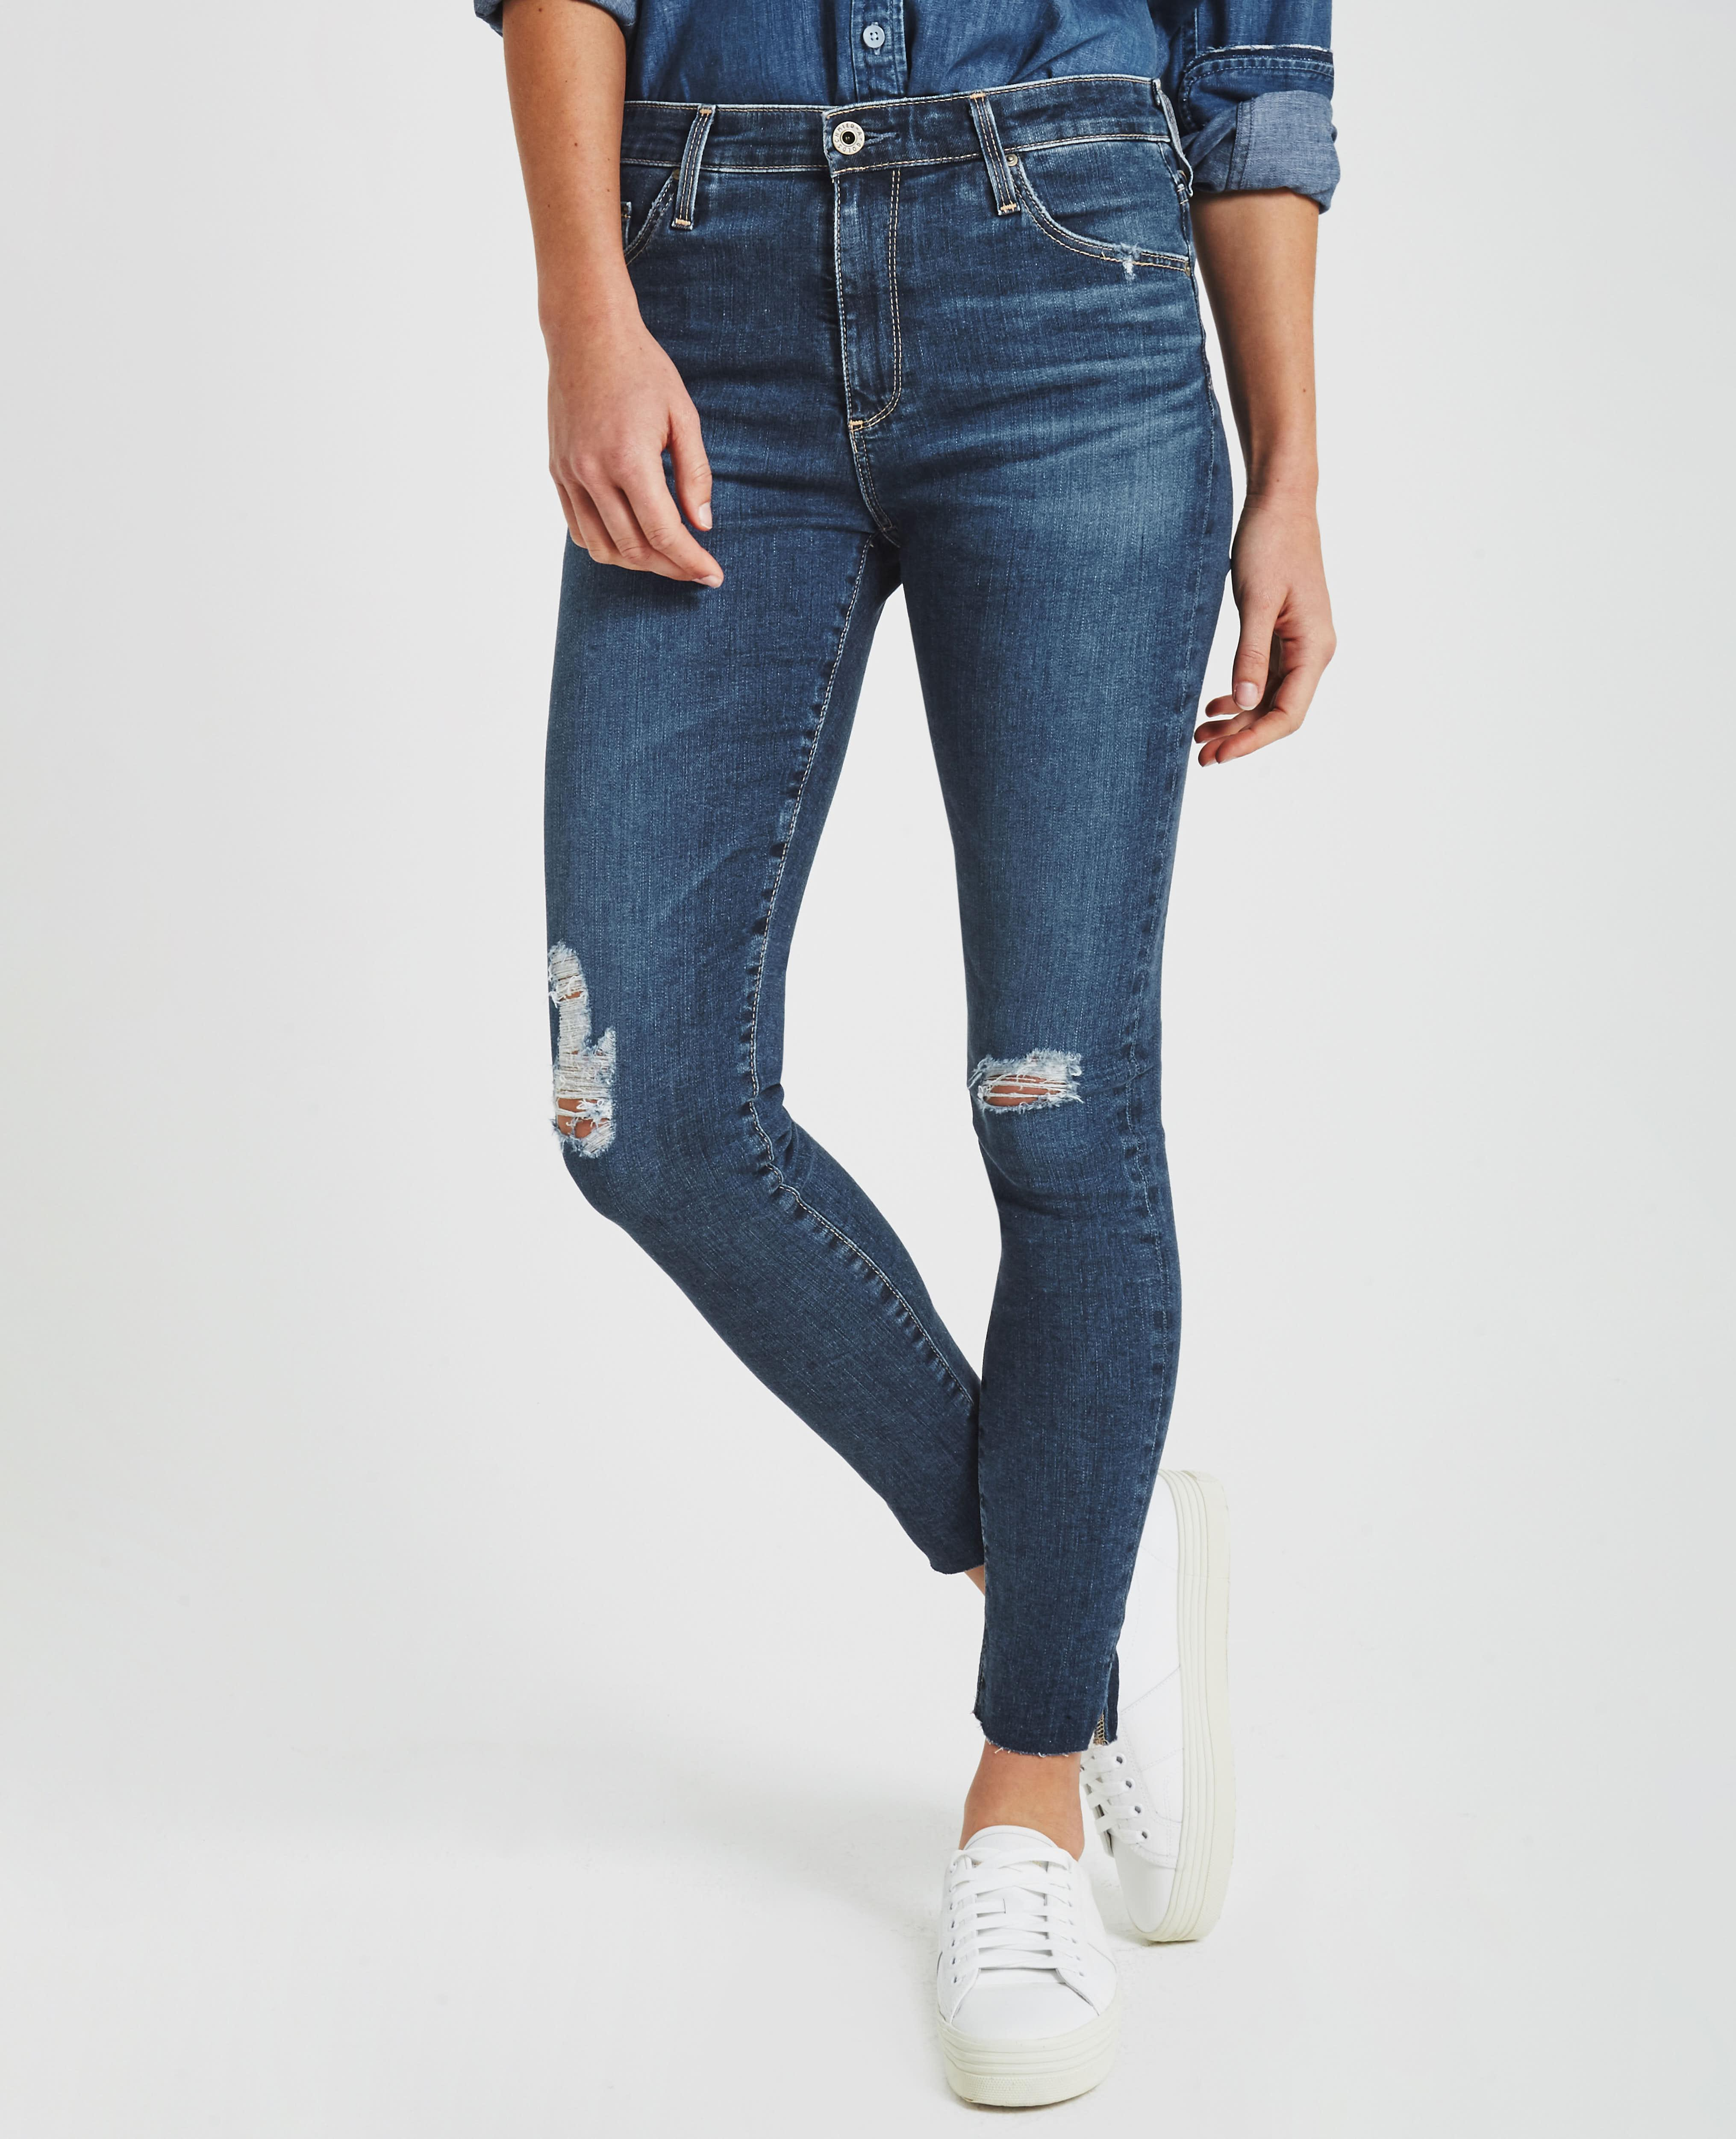 Ankle Jeans Farrah The In Destroyed Ag Interim Store Official xBrdeCo